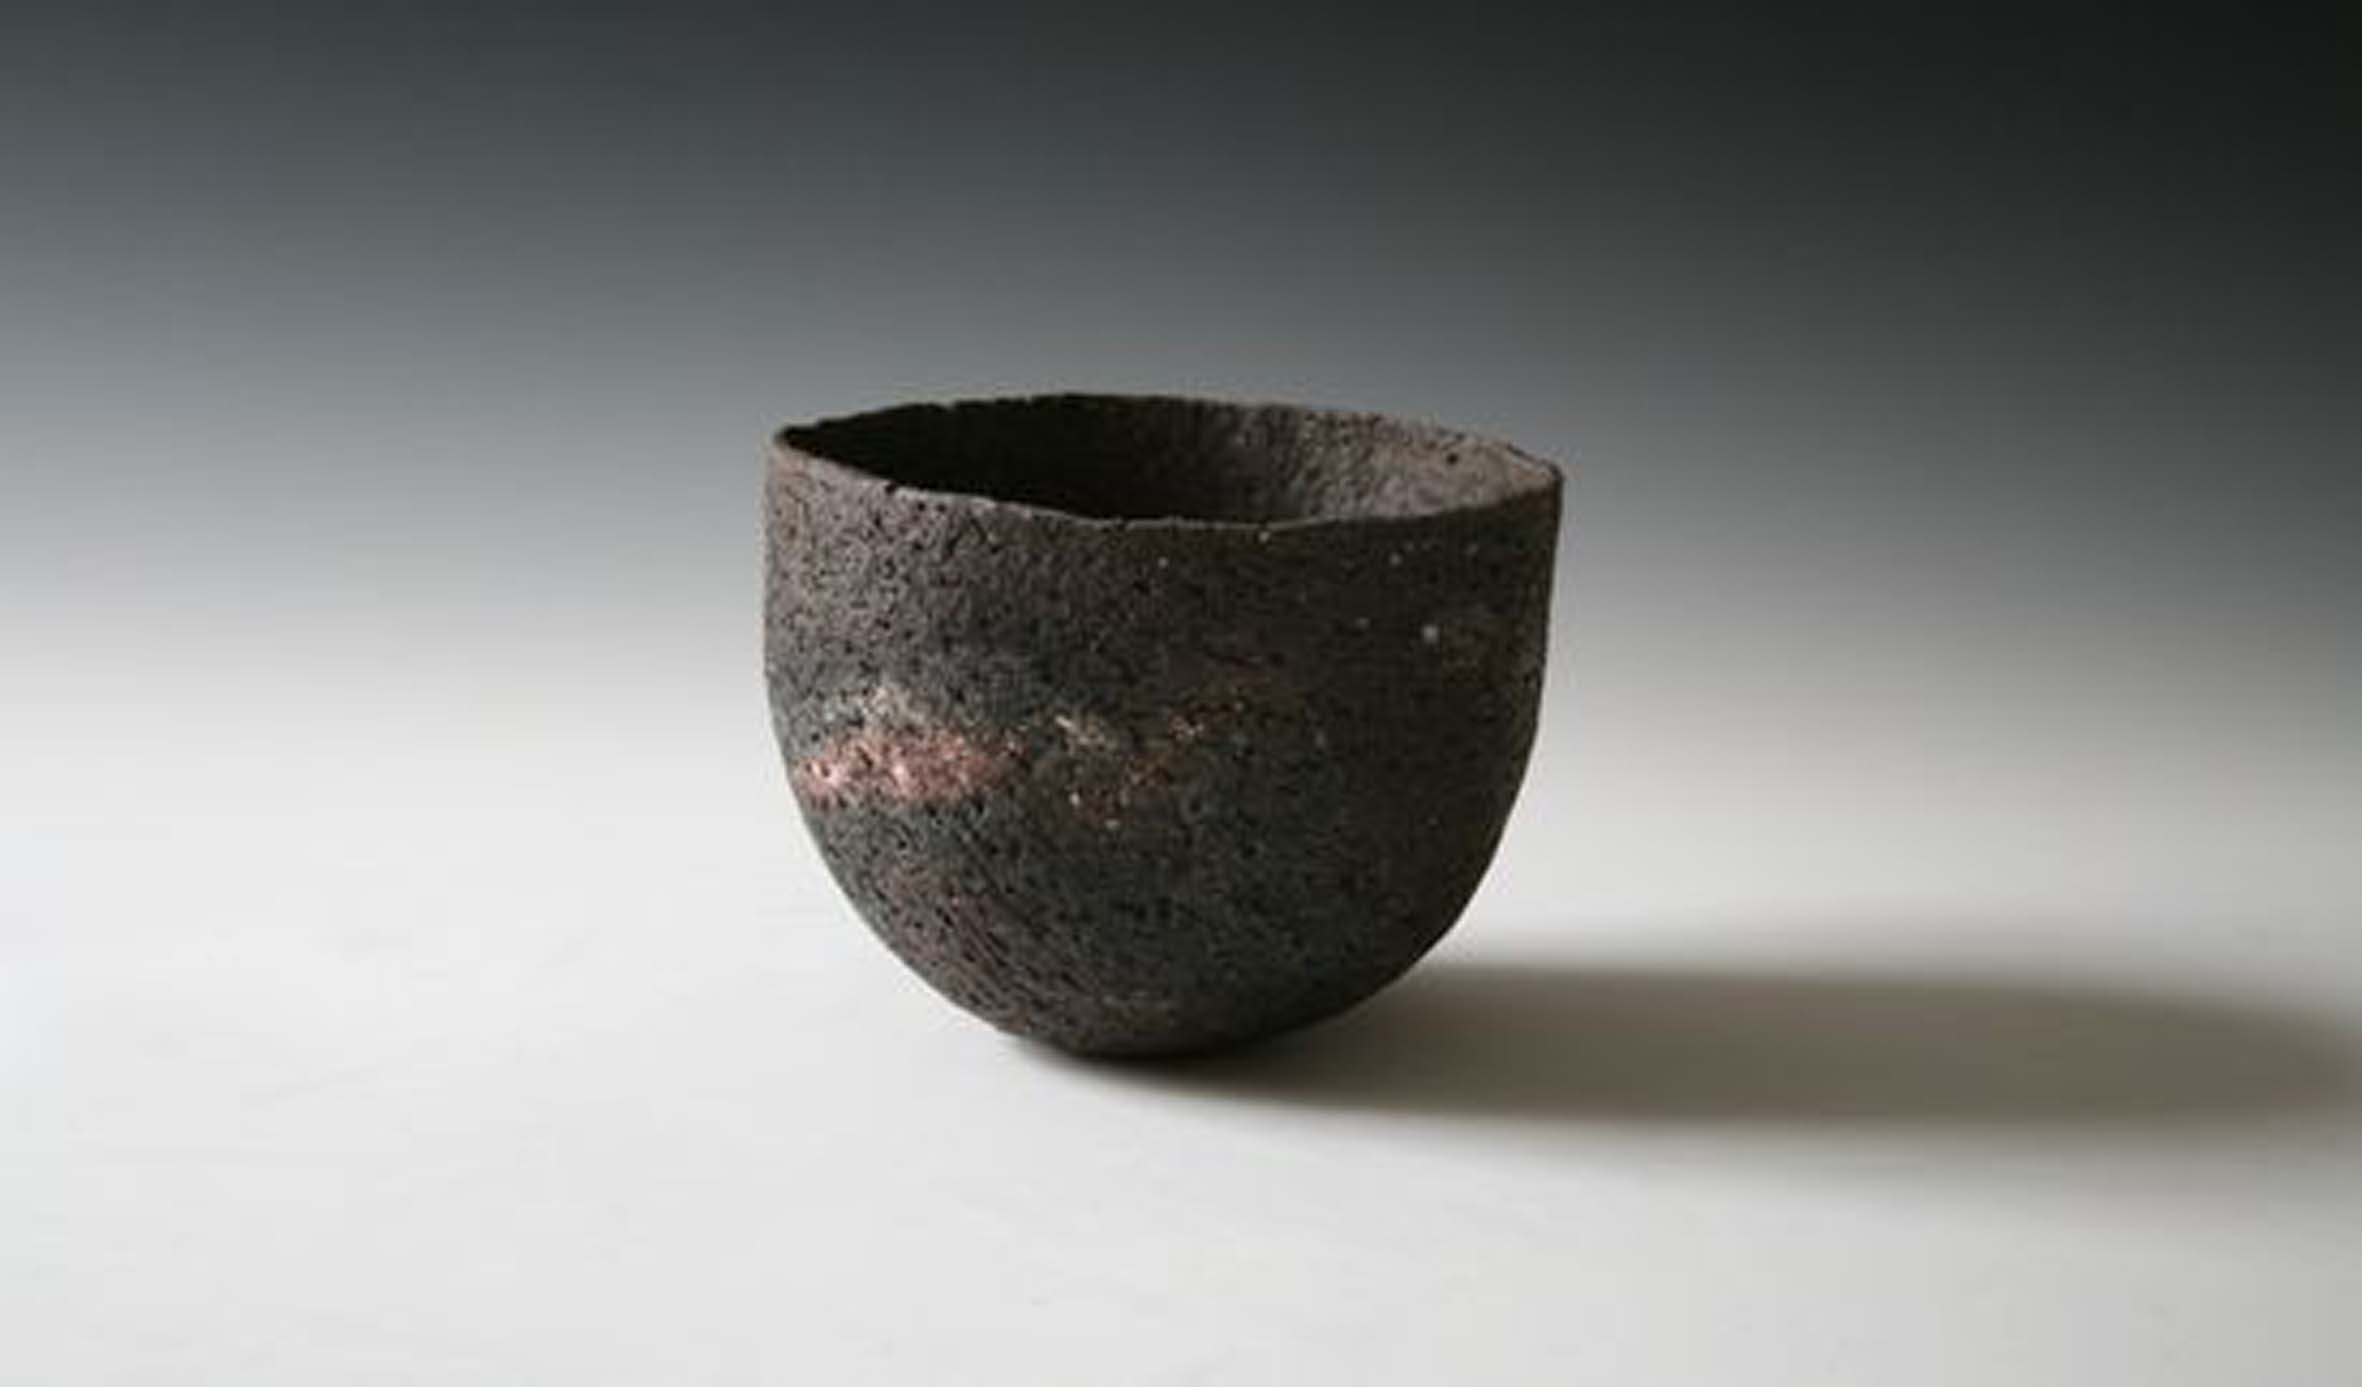 Elspeth Owen. Coarse Dark Bowl, 2012. Pinched clay fired with oxides and seaweed, approx. 5 x 5.5 x 5.5 in. Photo by author.